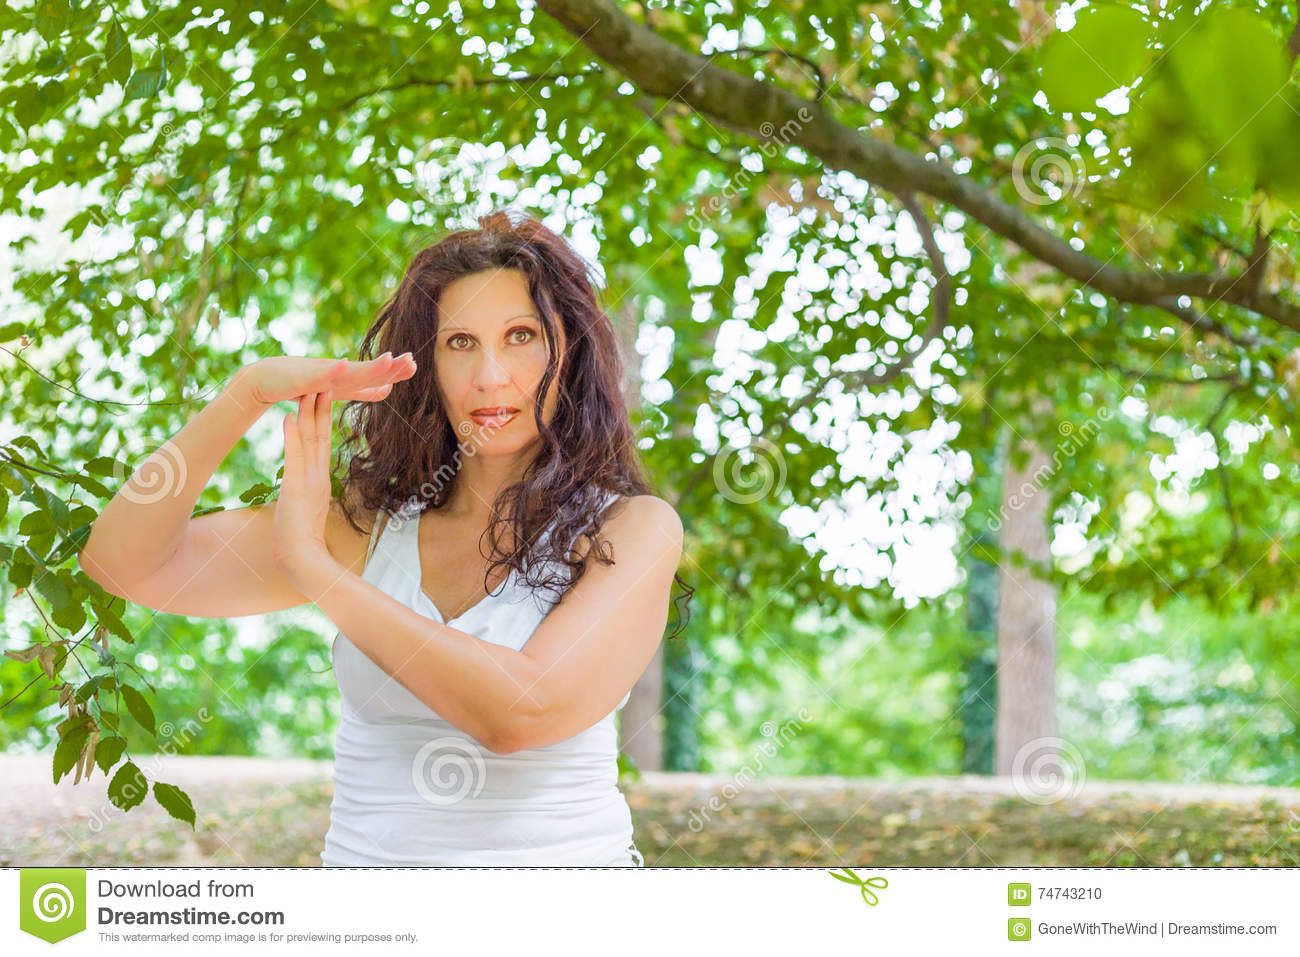 Busty Mature Woman Showing Time Out Gesture